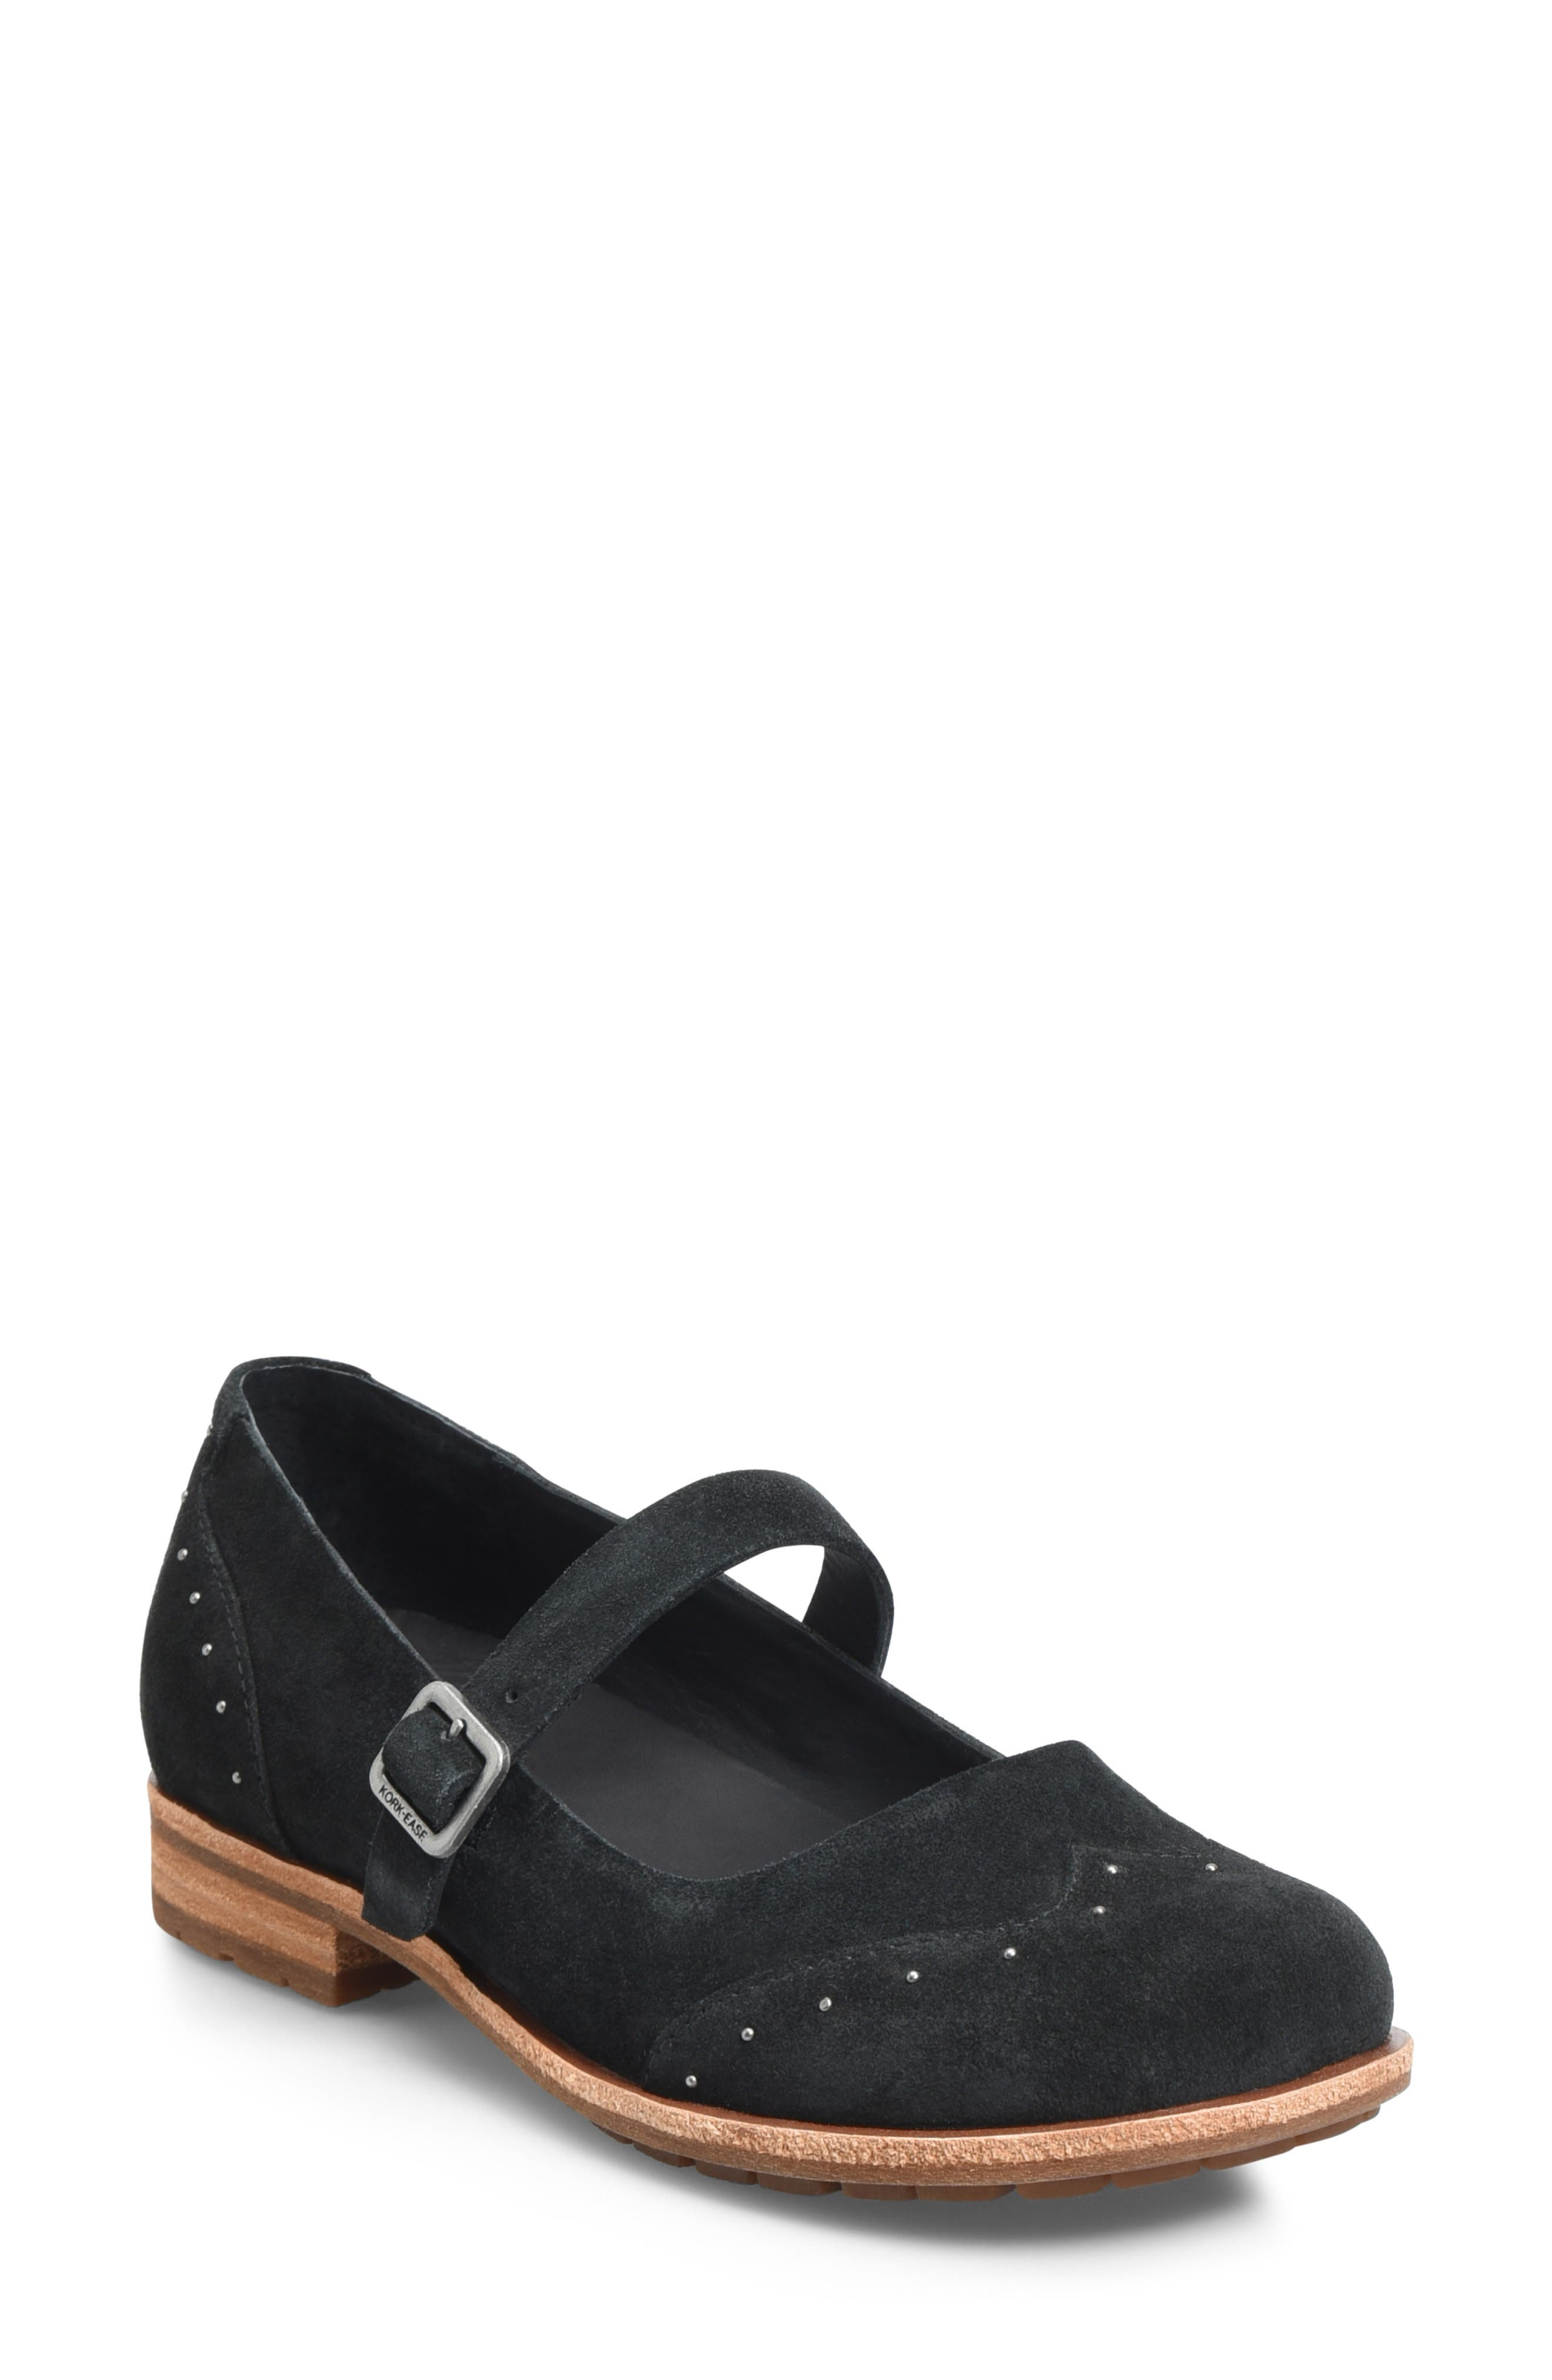 Kork-Ease Brystal Mary Jane Flat- Black